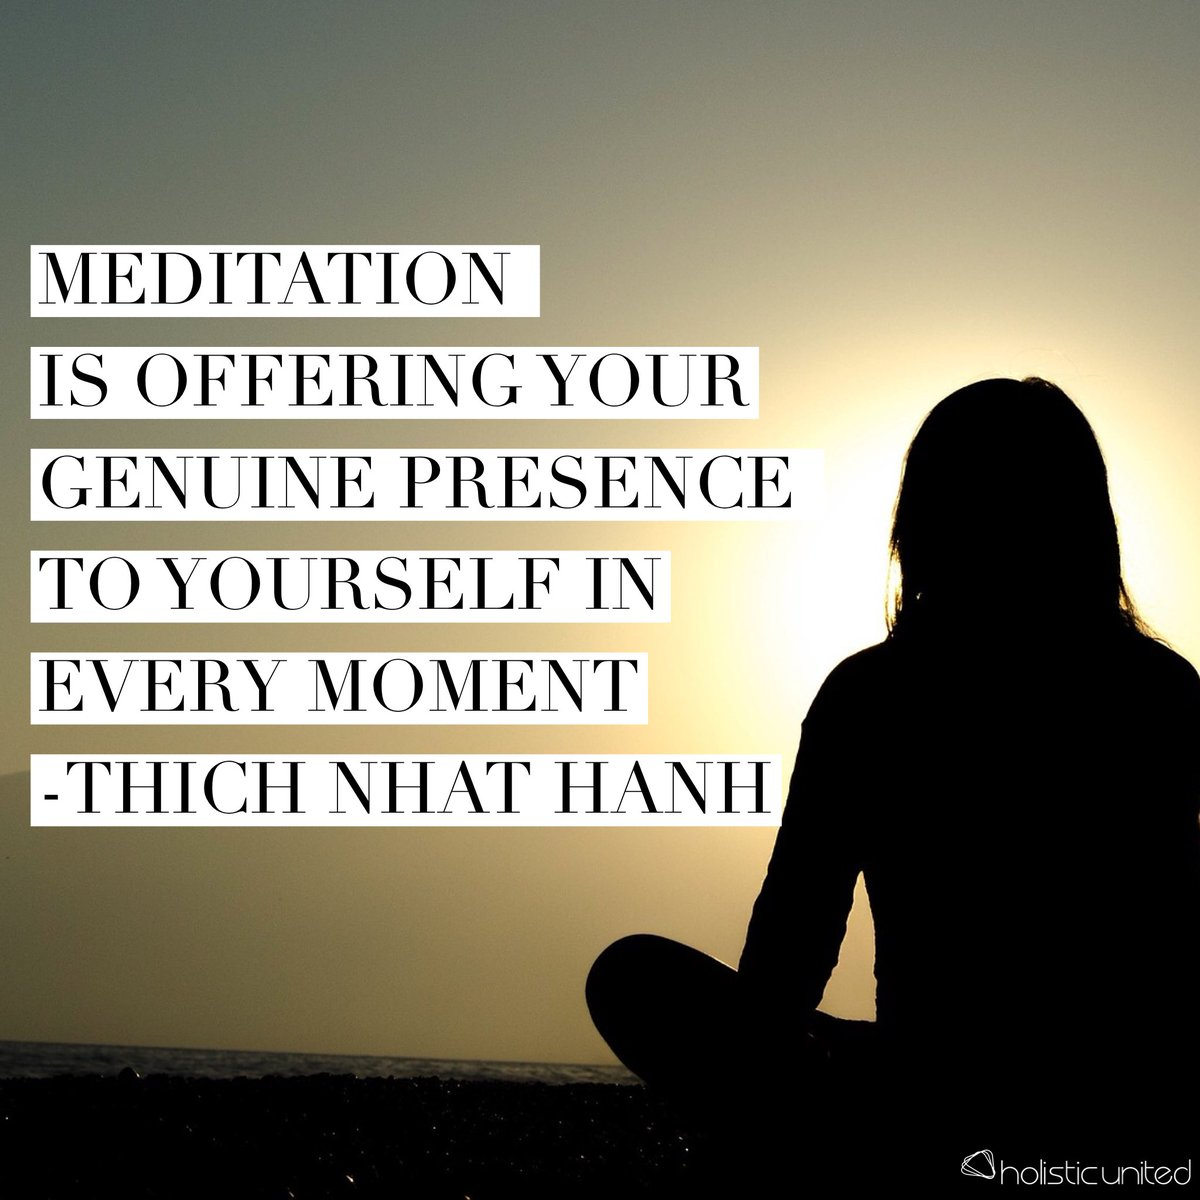 #Meditation is offering your #genuine #presence to yourself in every #moment - Thich Nhat Hanh. #holisticunited https://t.co/BJs99XaHmI